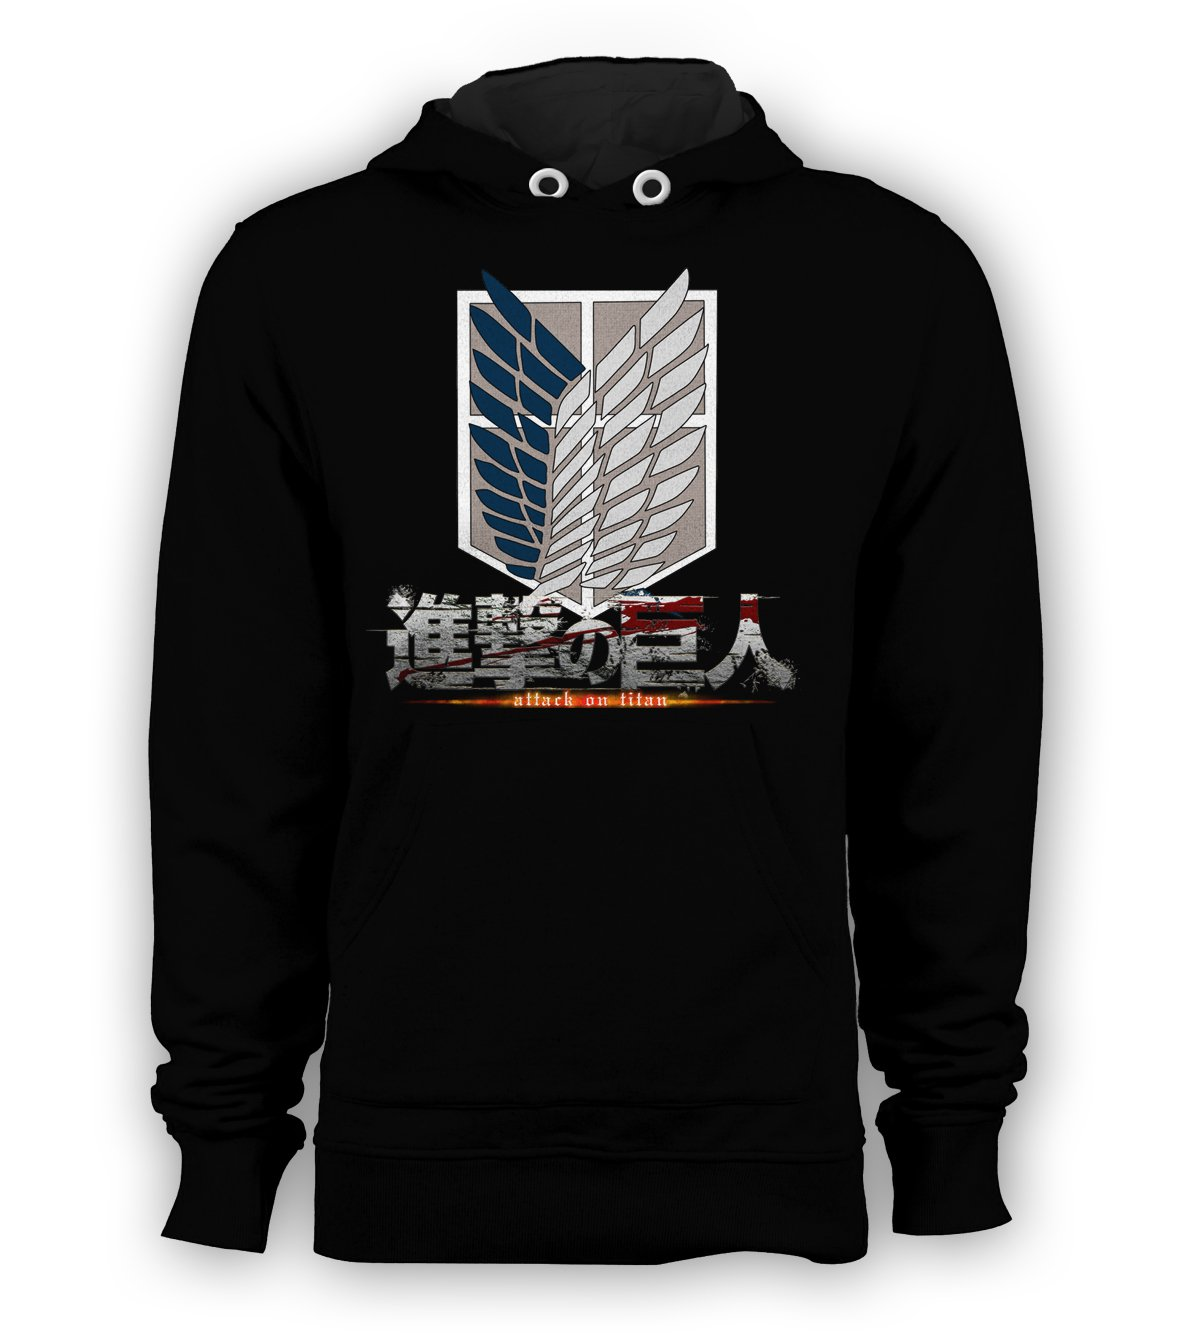 Attack On Titan Wings of Freedom Pullover Hoodie Men Sweatshirts Size S to 3XL New Black